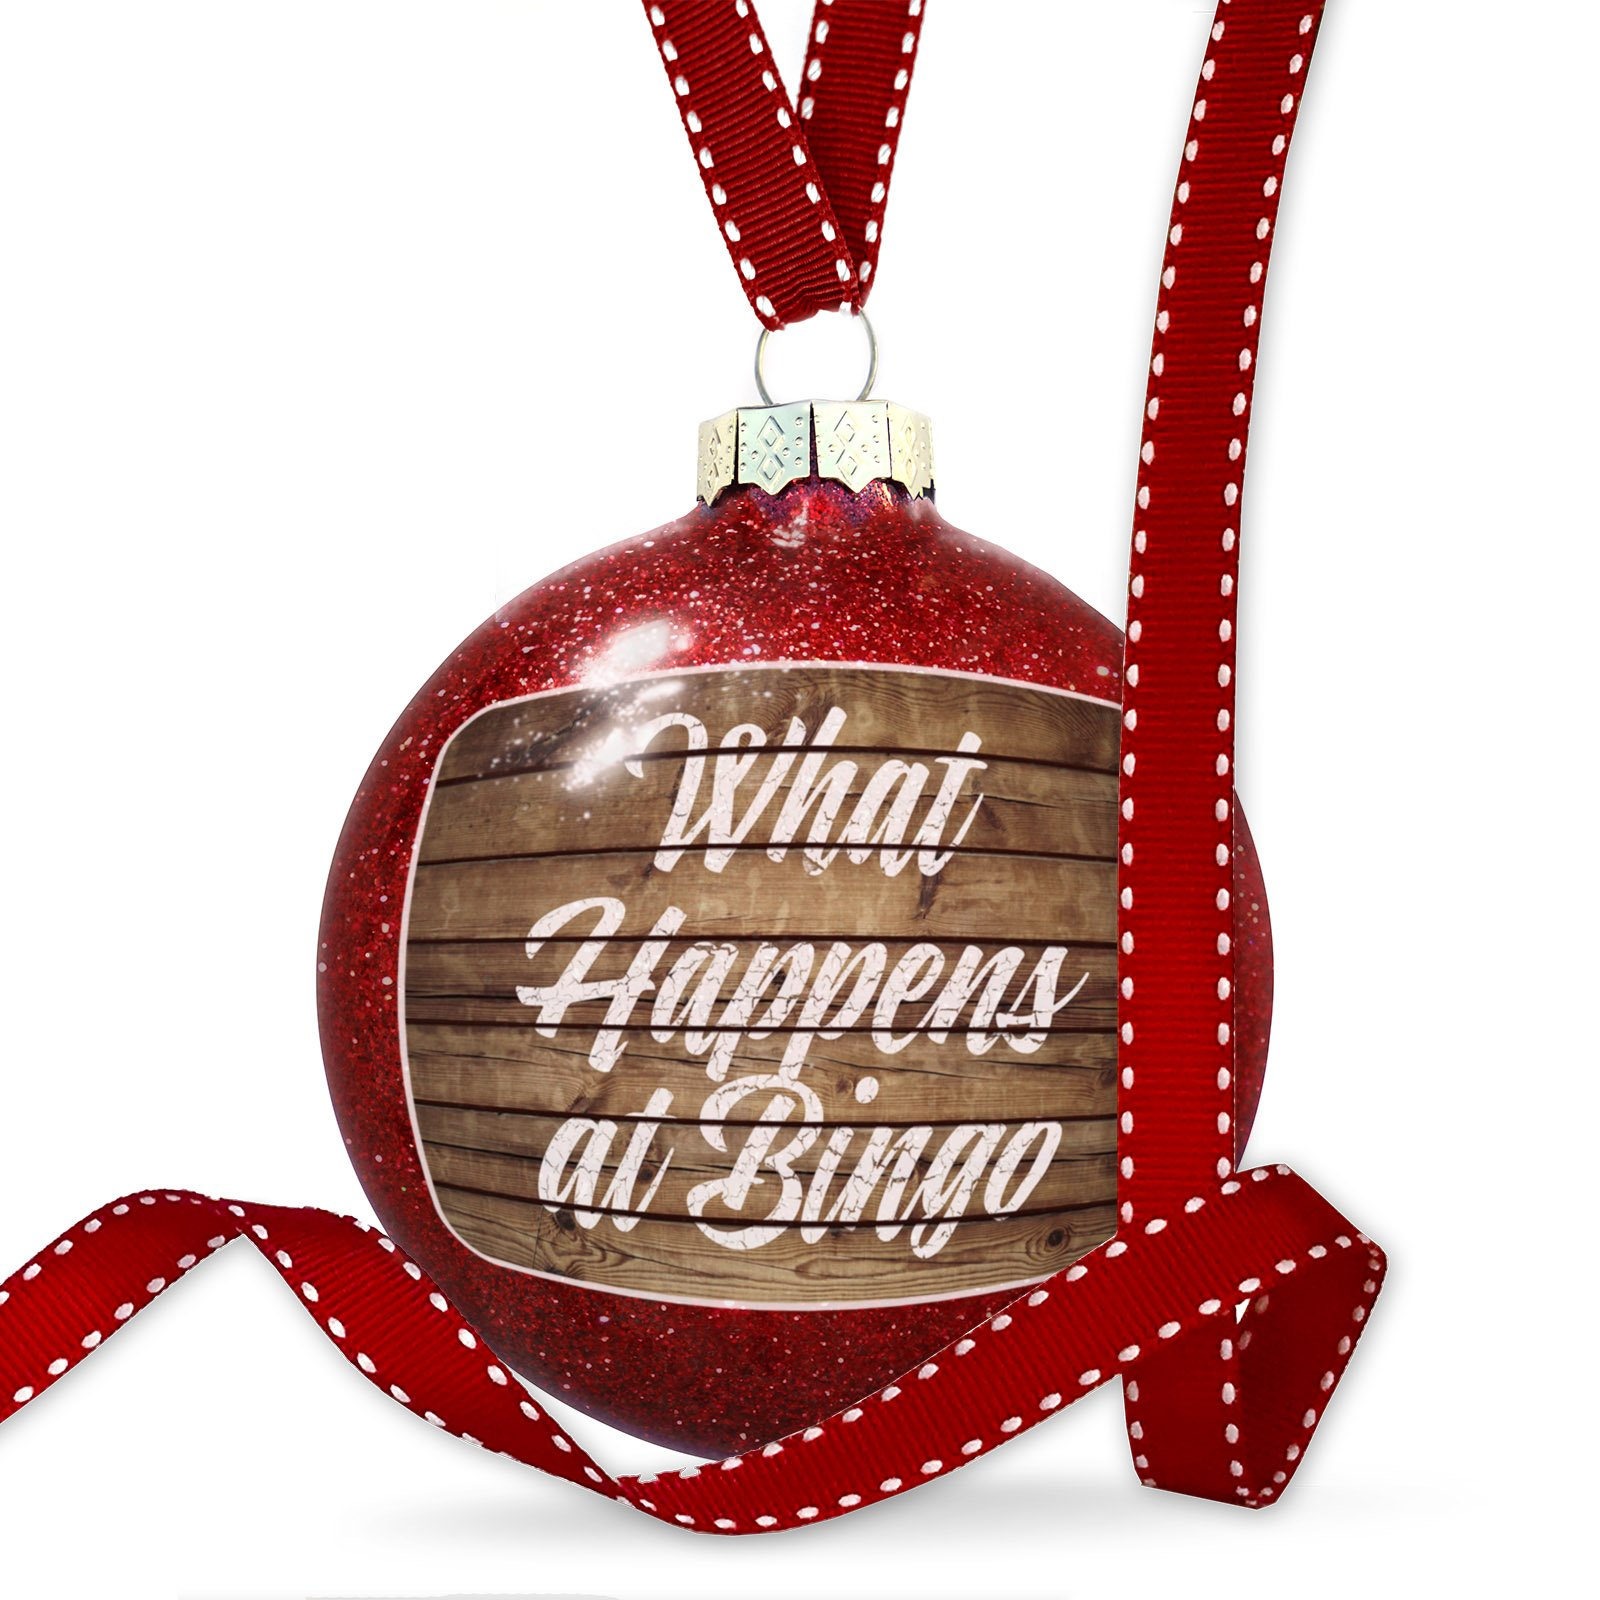 Christmas Decoration Painted Wood What Happens at Bingo Ornament by NEONBLOND